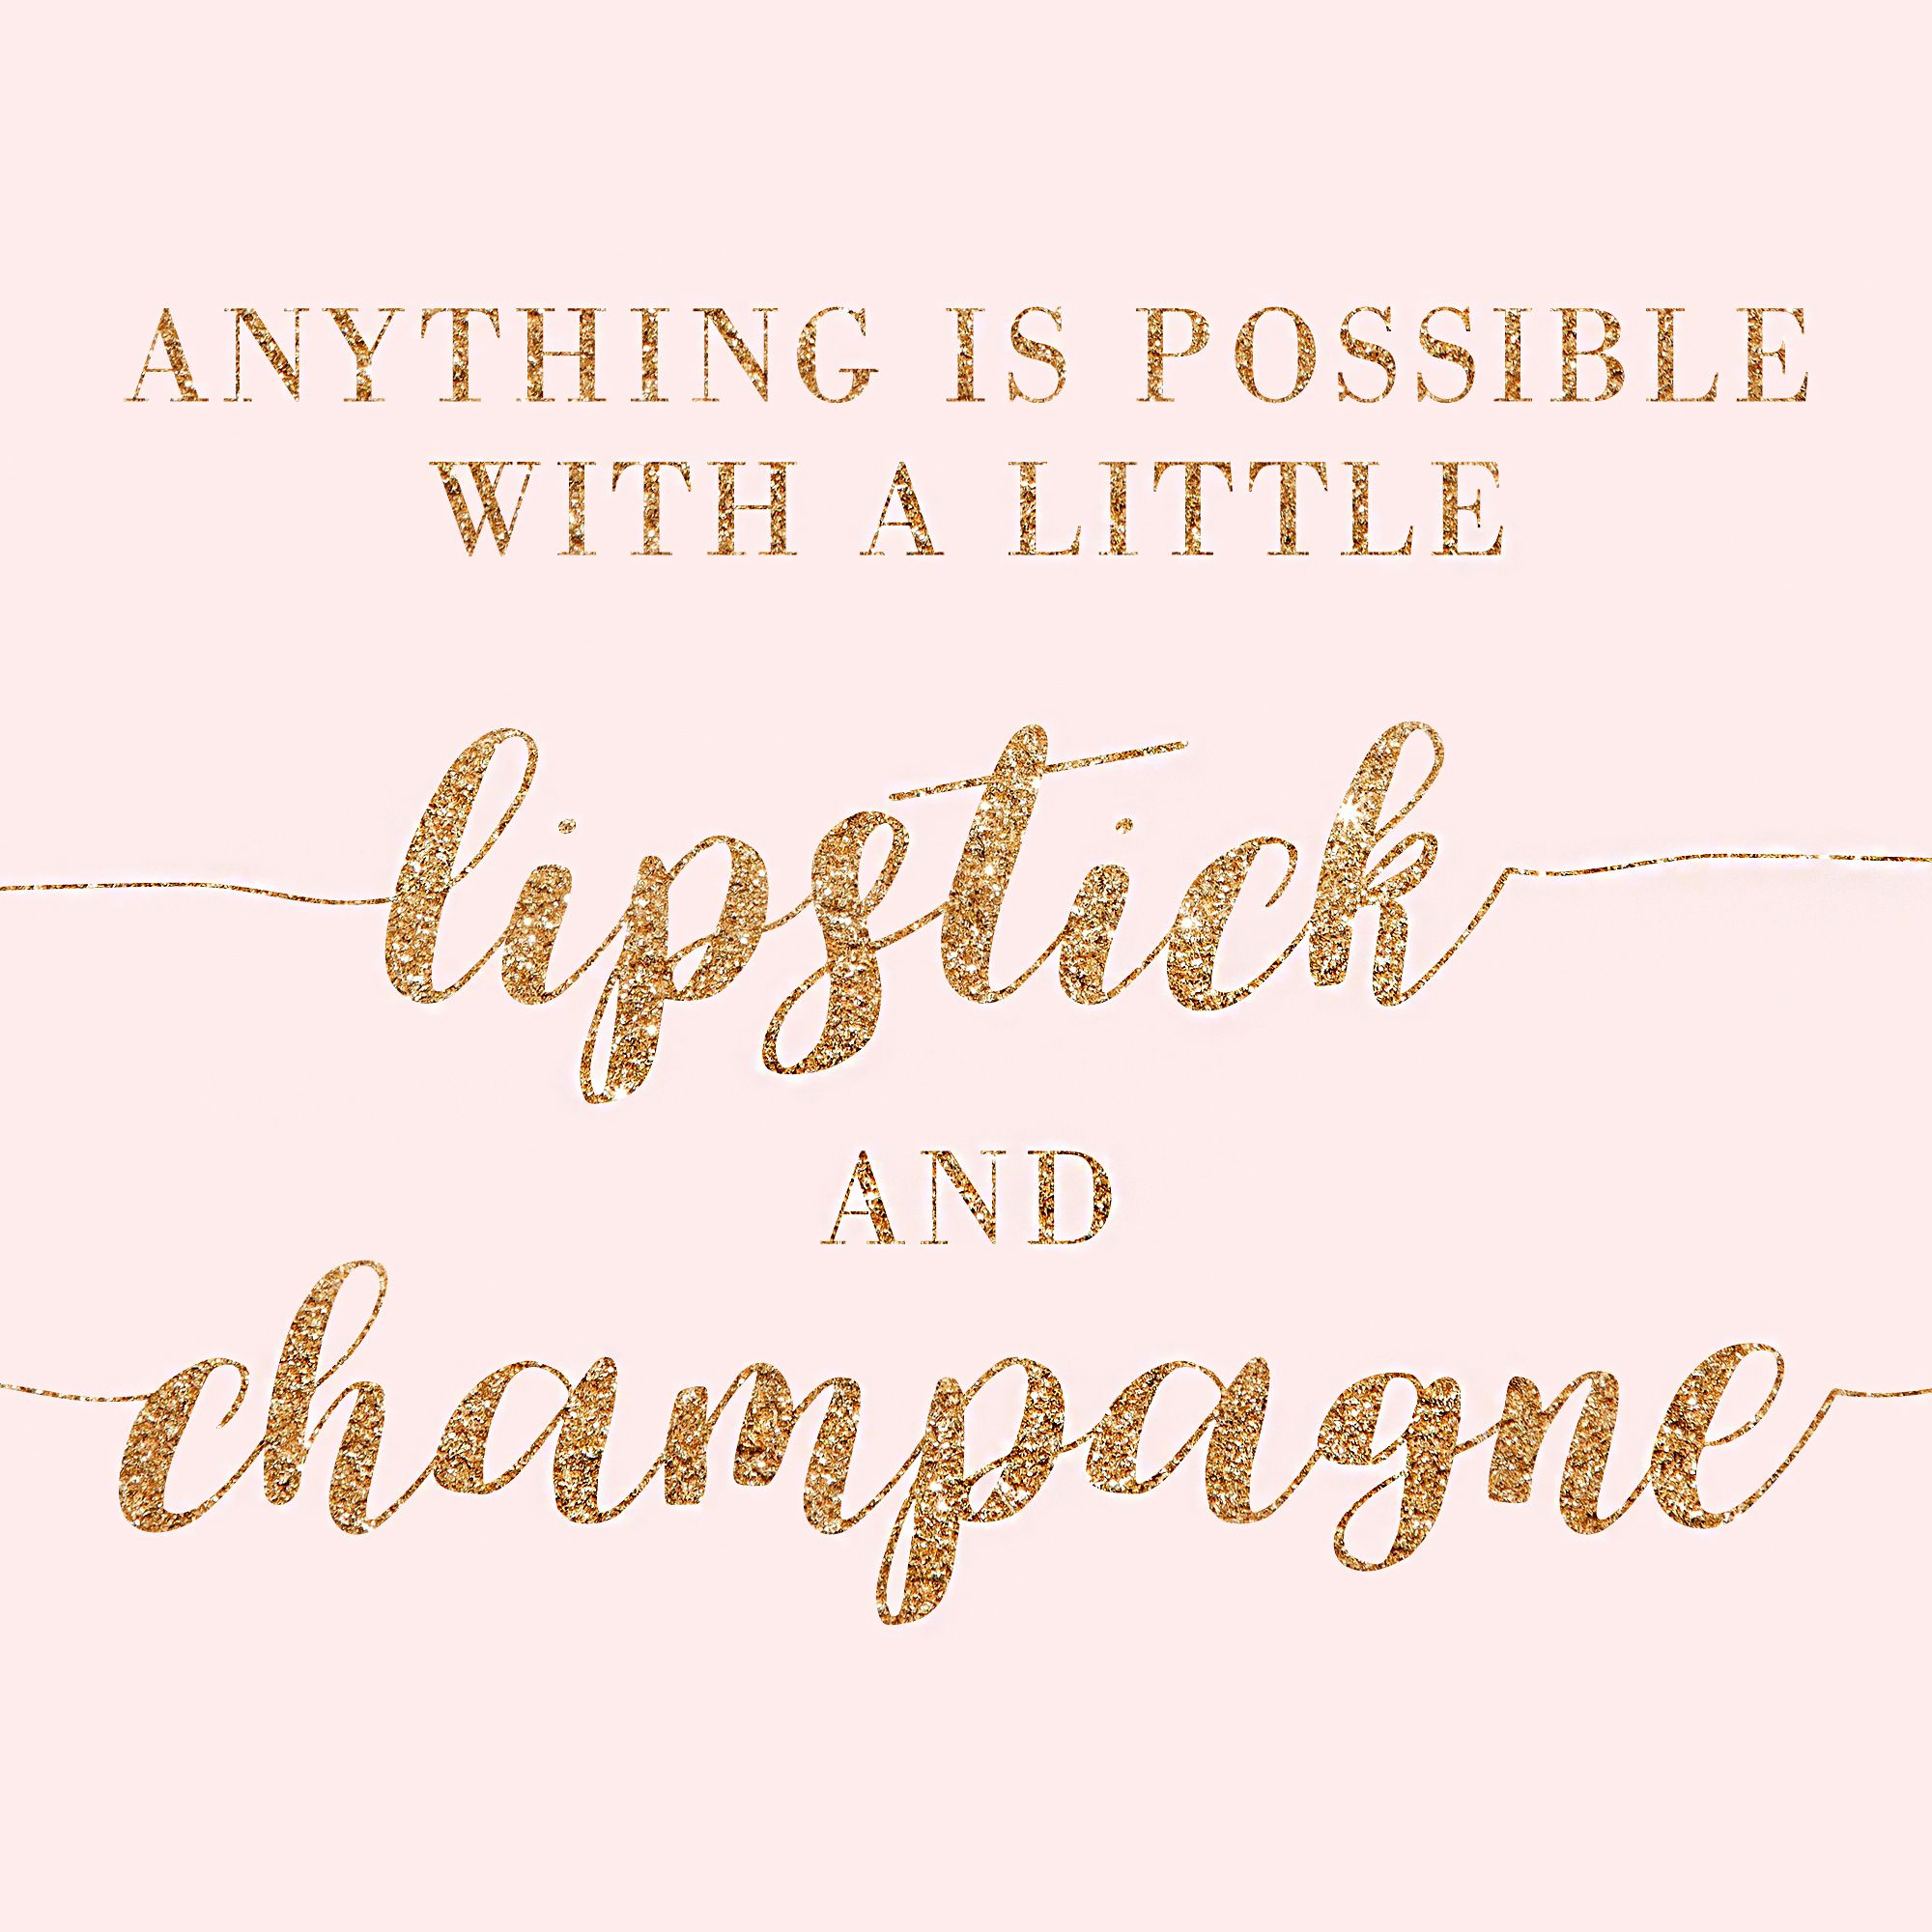 Anything is possible with a little lipstick and champagne